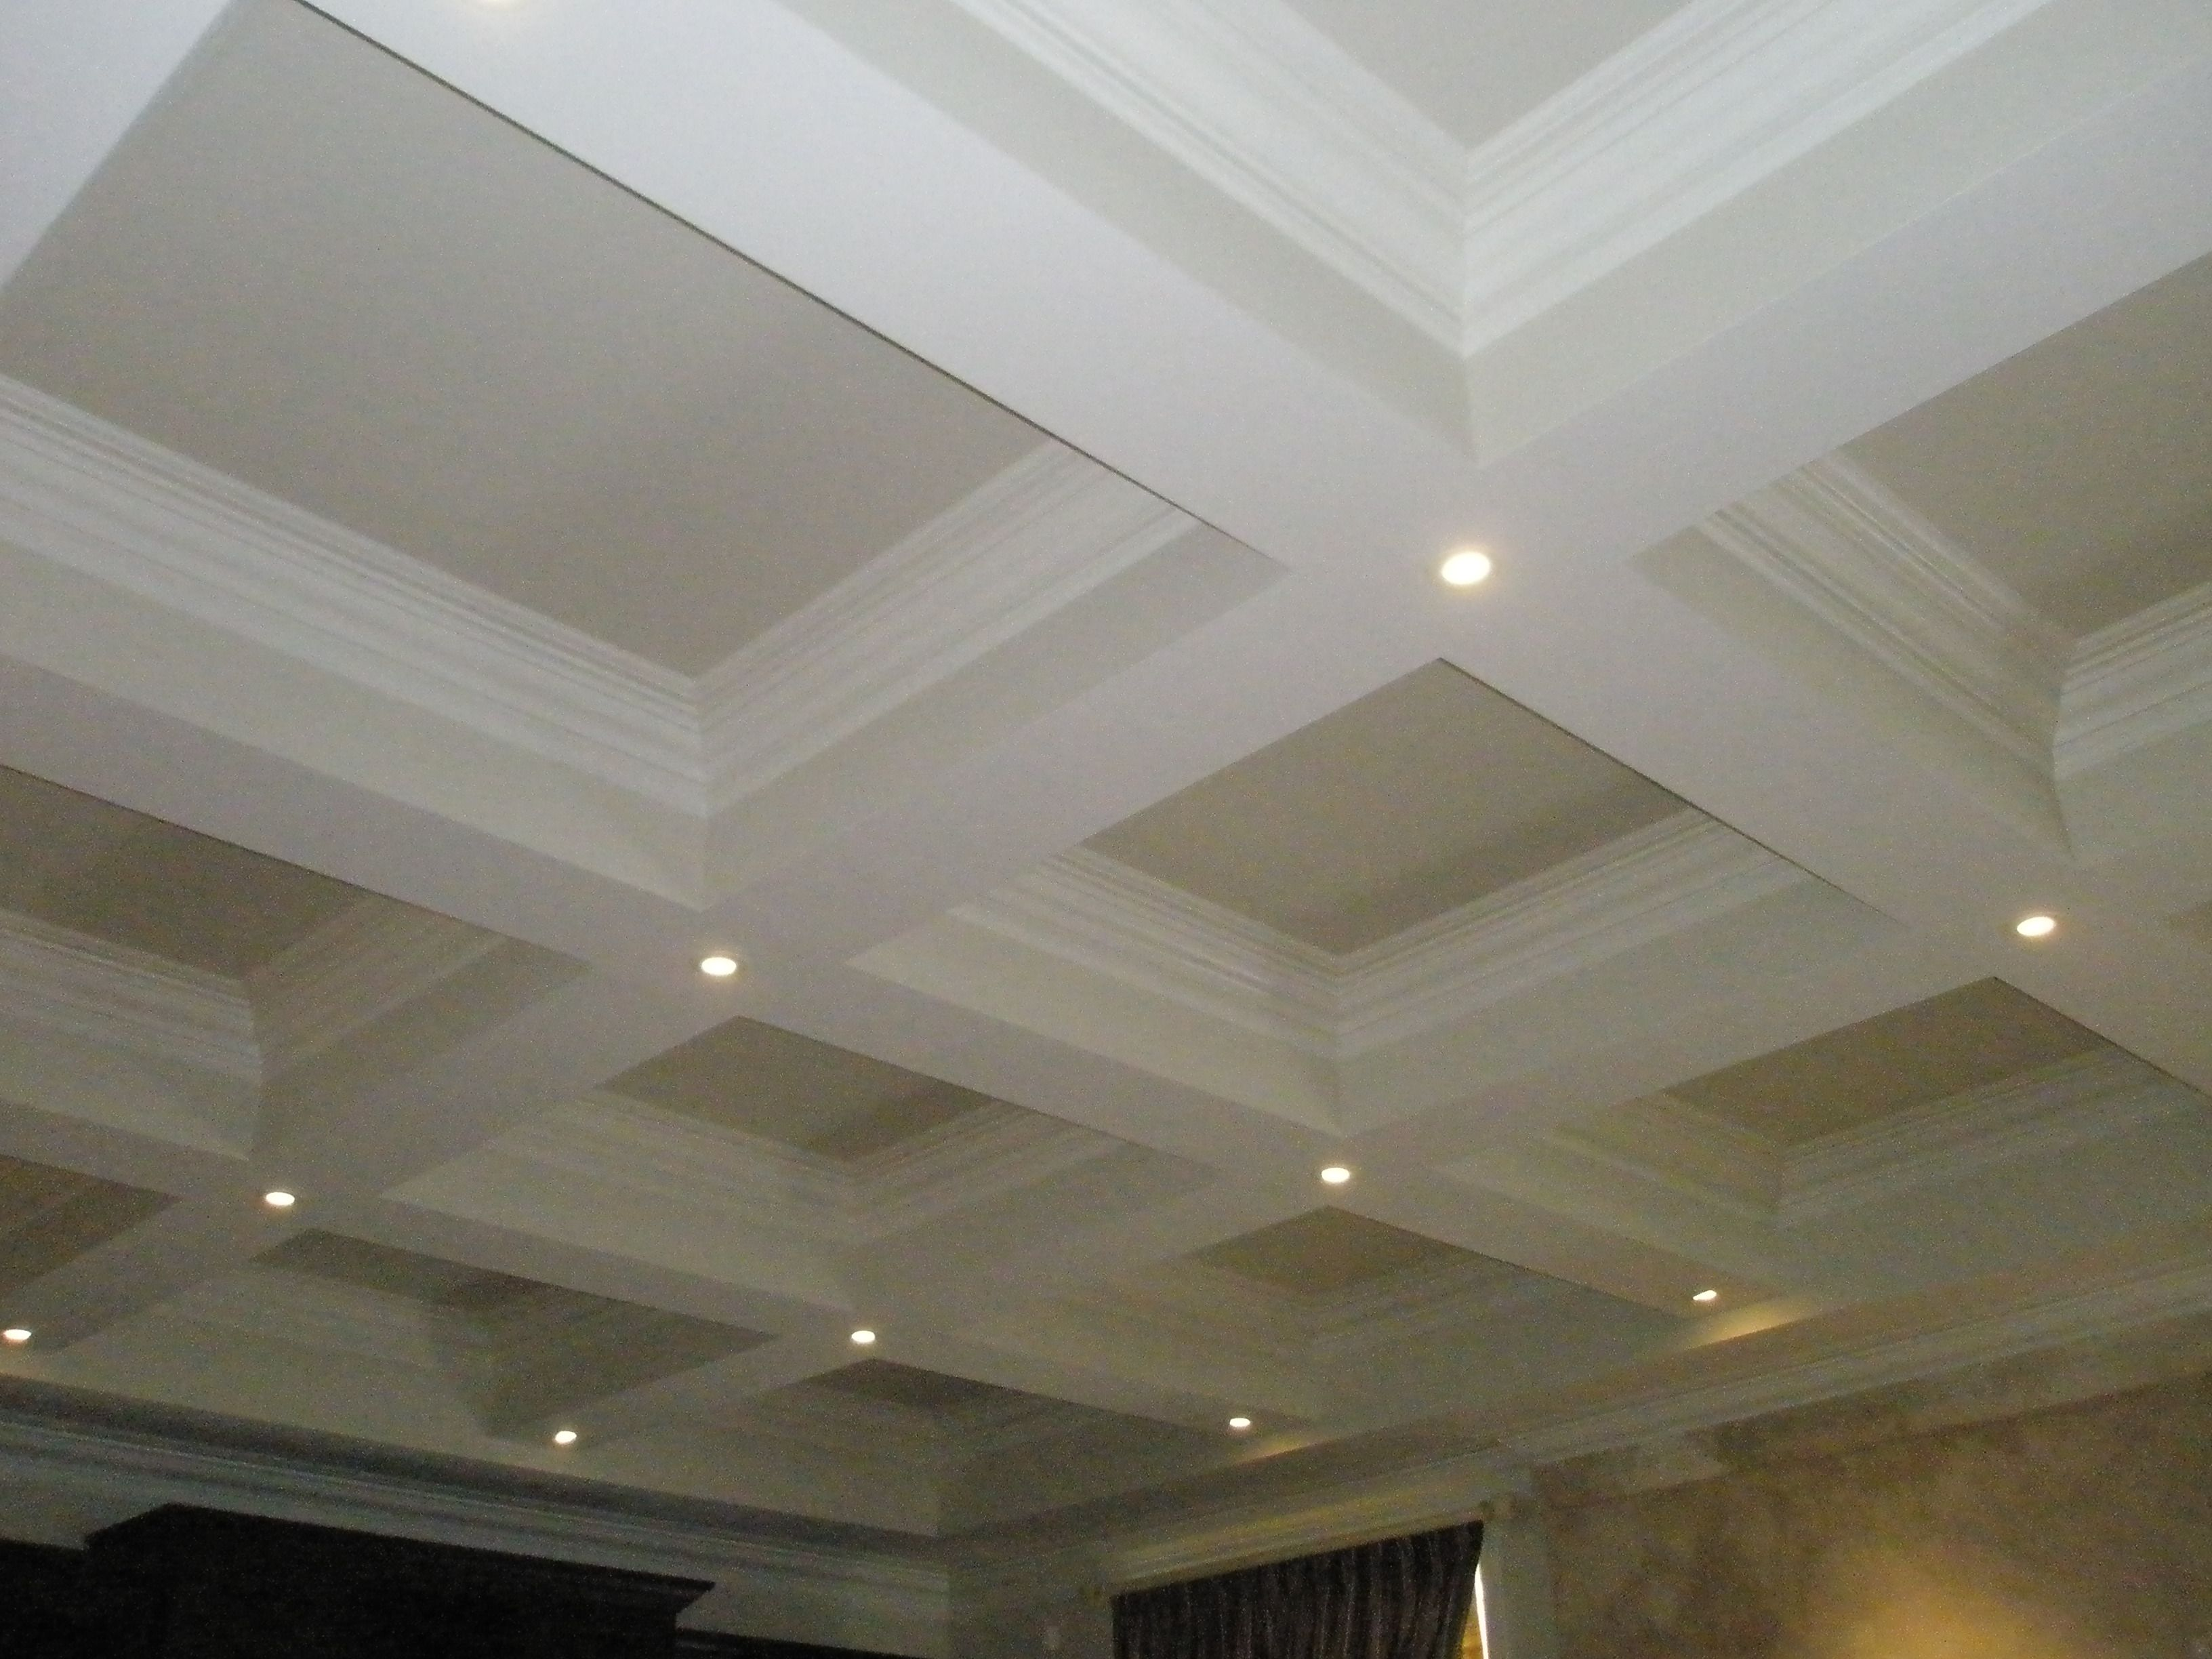 build up crown molding design ideas bing images - Ceiling Molding Design Ideas